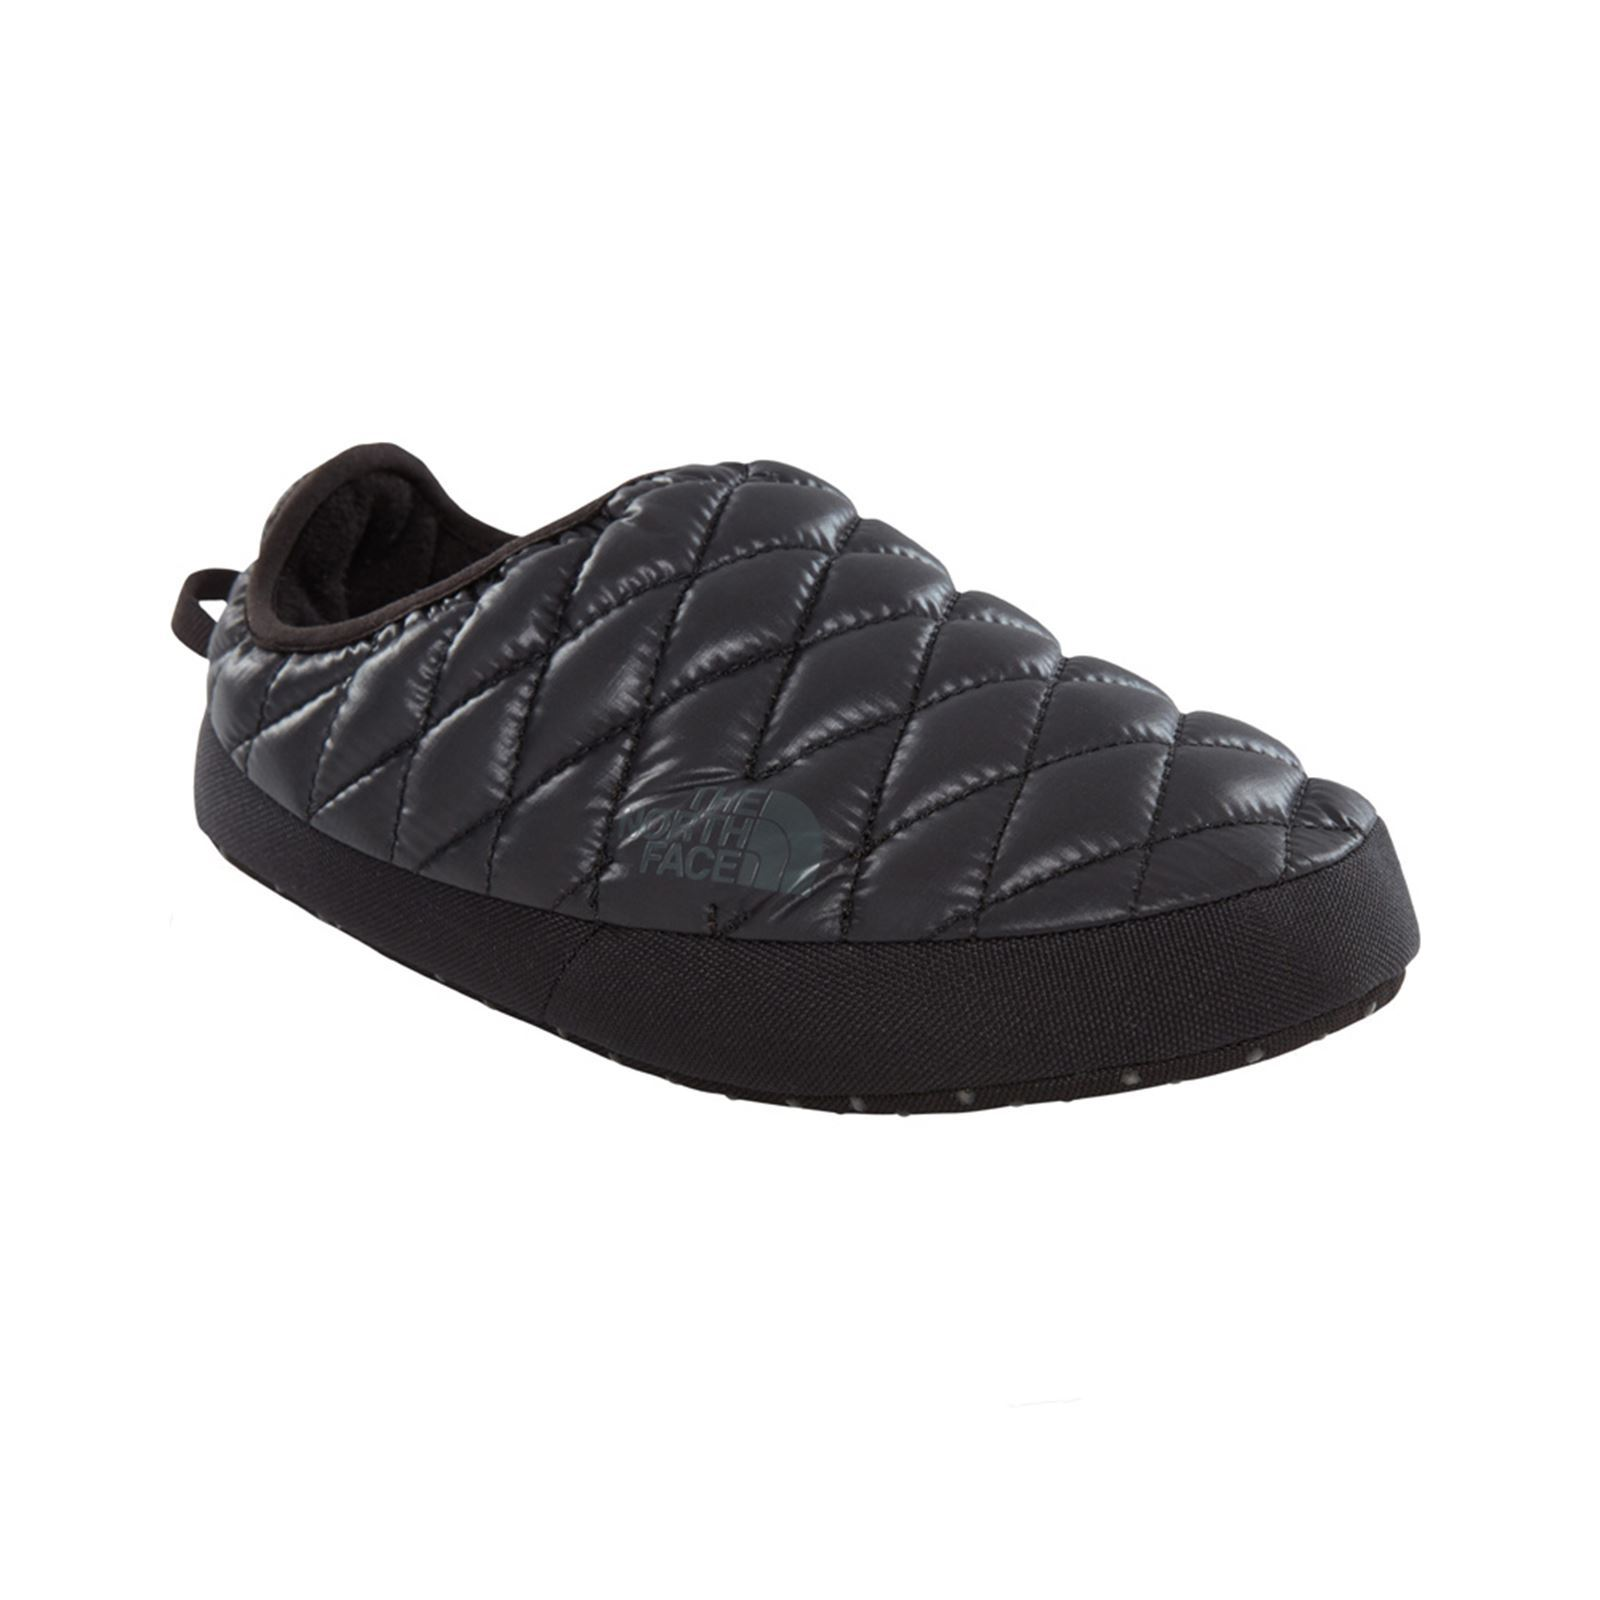 Tntmul4 Face The Chaussons North Thermoball Brandalley Noir wU1qa6xS